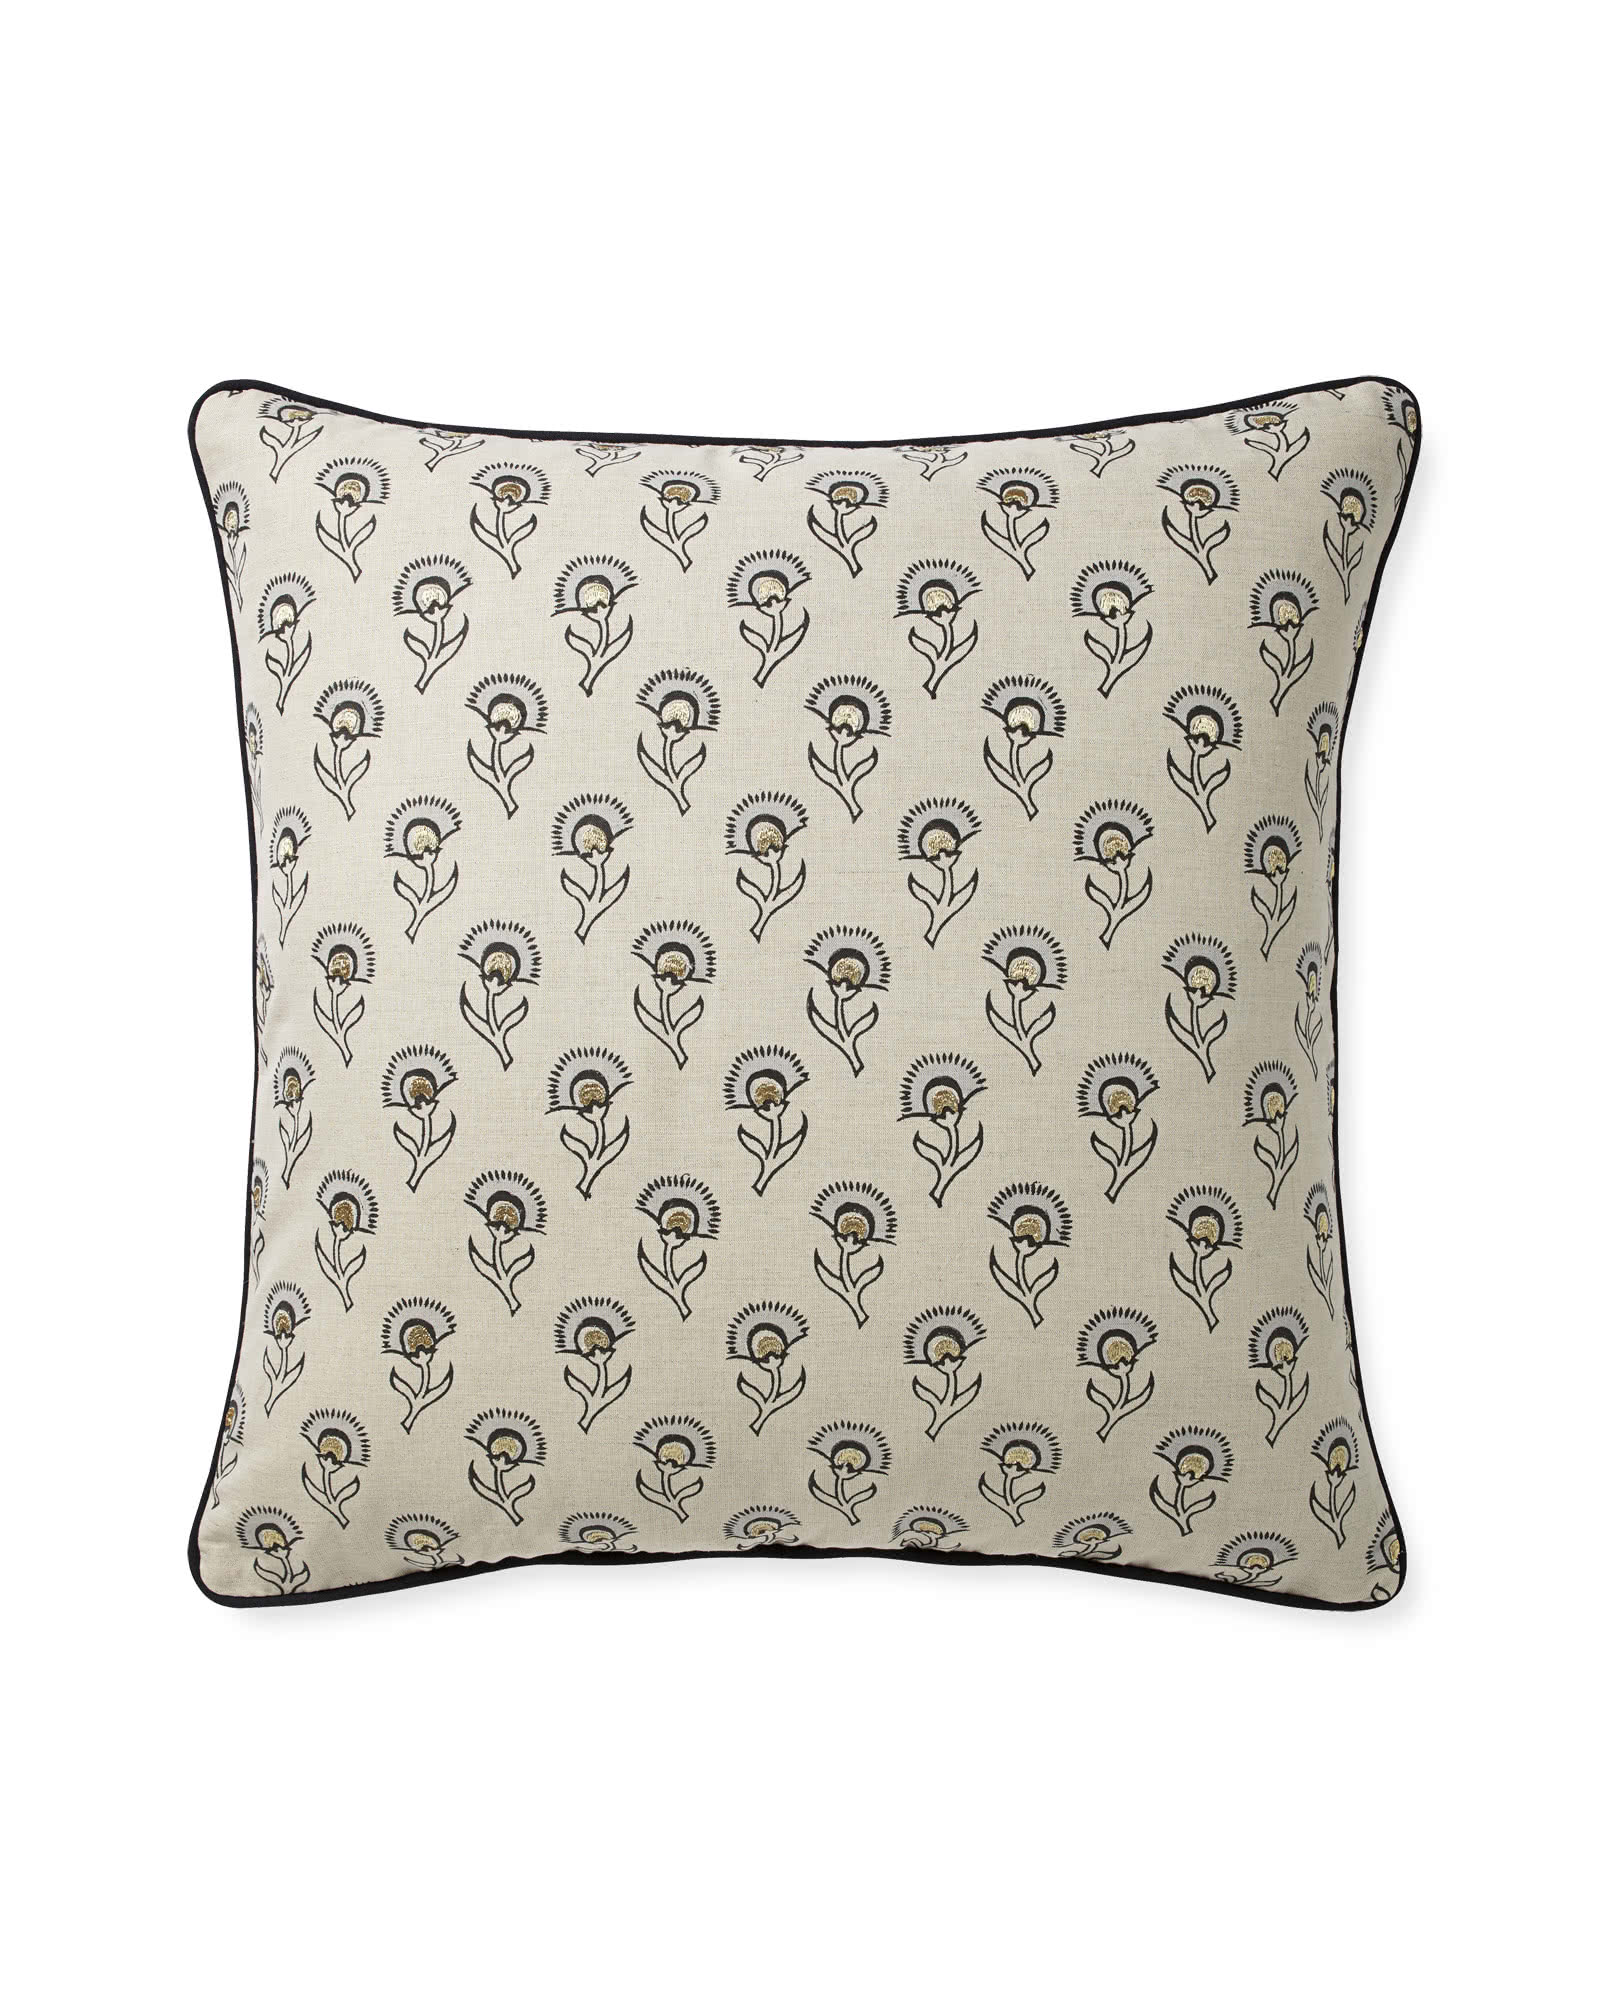 Hazel Pillow Cover, Metallic/Black